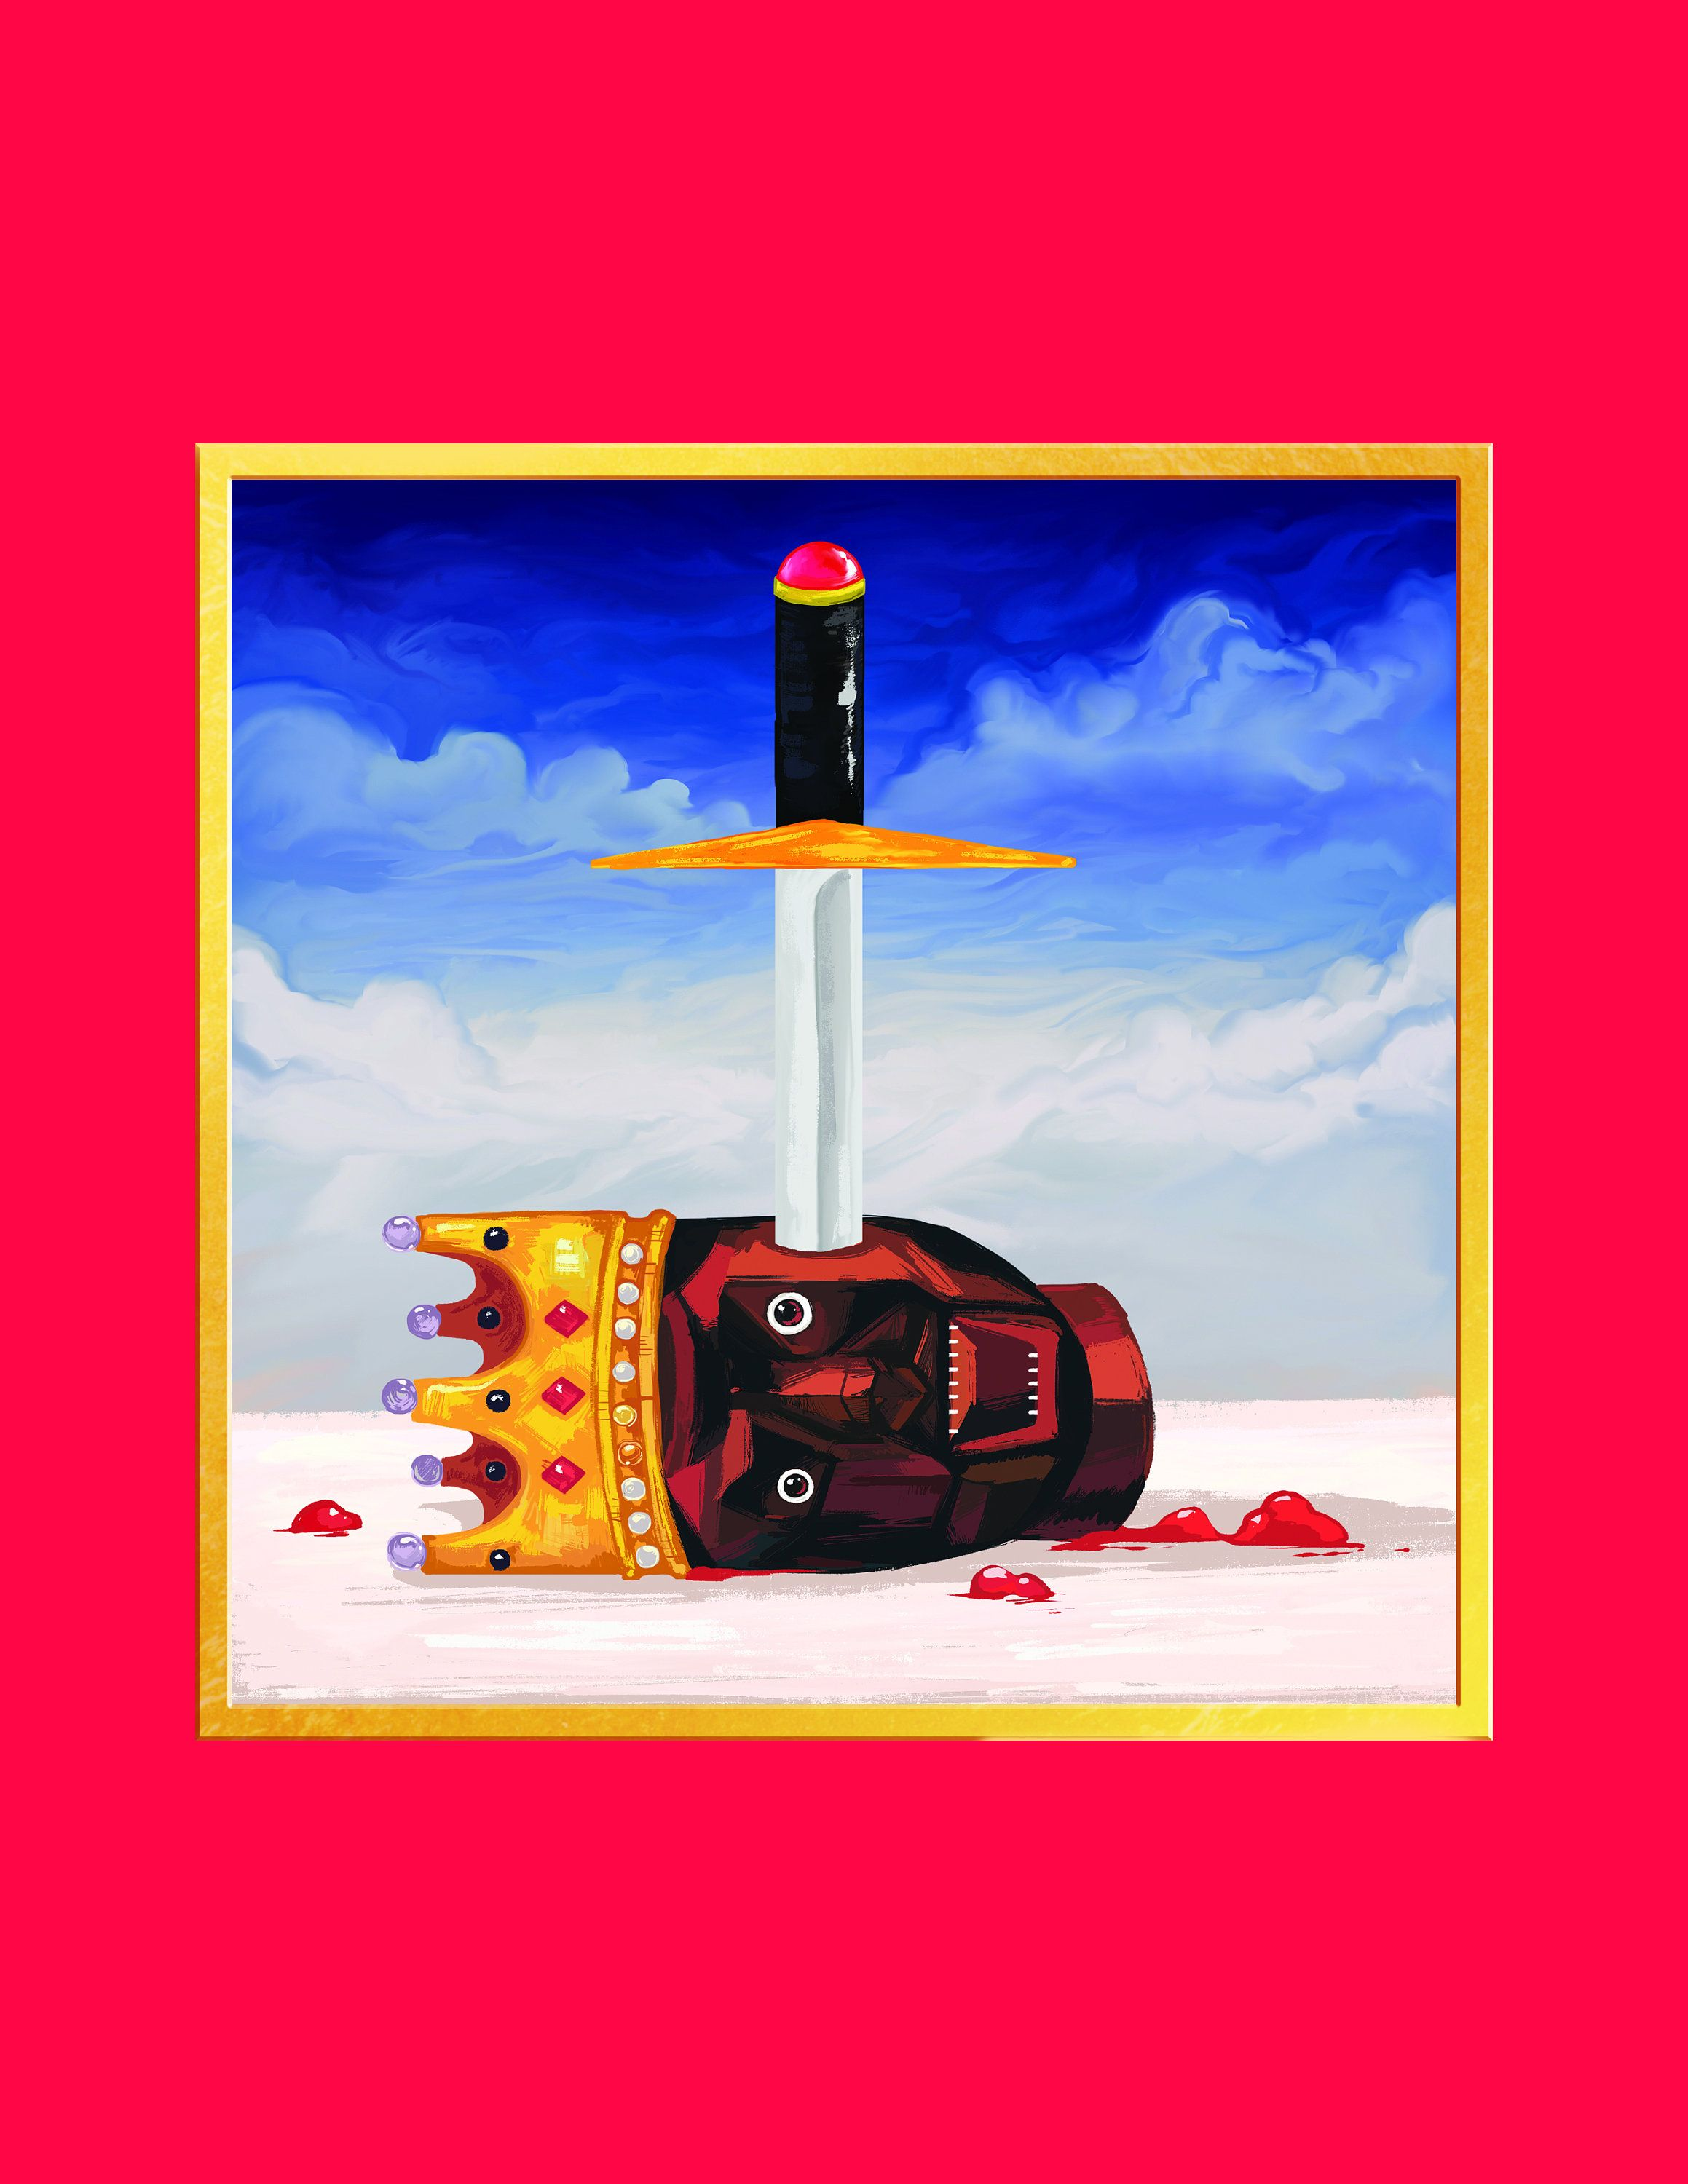 Excited To Share The Latest Addition To My Etsy Shop Kanye West Album Cover Artwork Print Https In 2020 Kanye West Album Cover Kanye West Wallpaper Rap Album Covers